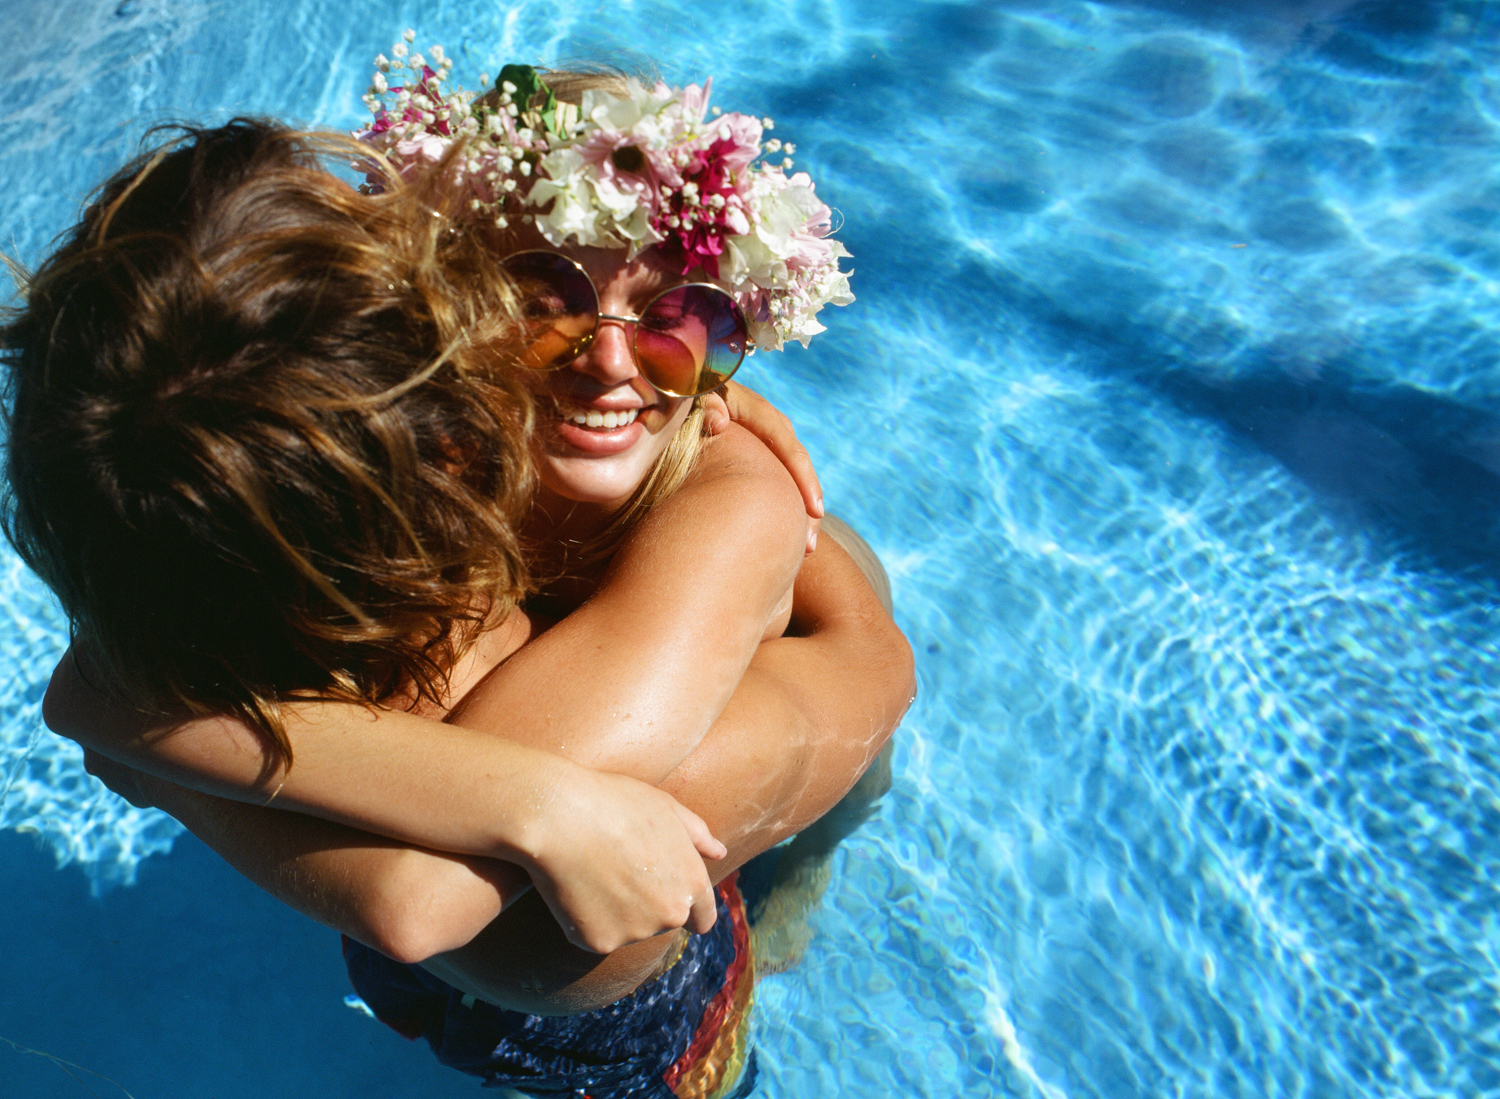 Boho couple in pool with flower headband by maui family photographer wendy laurel